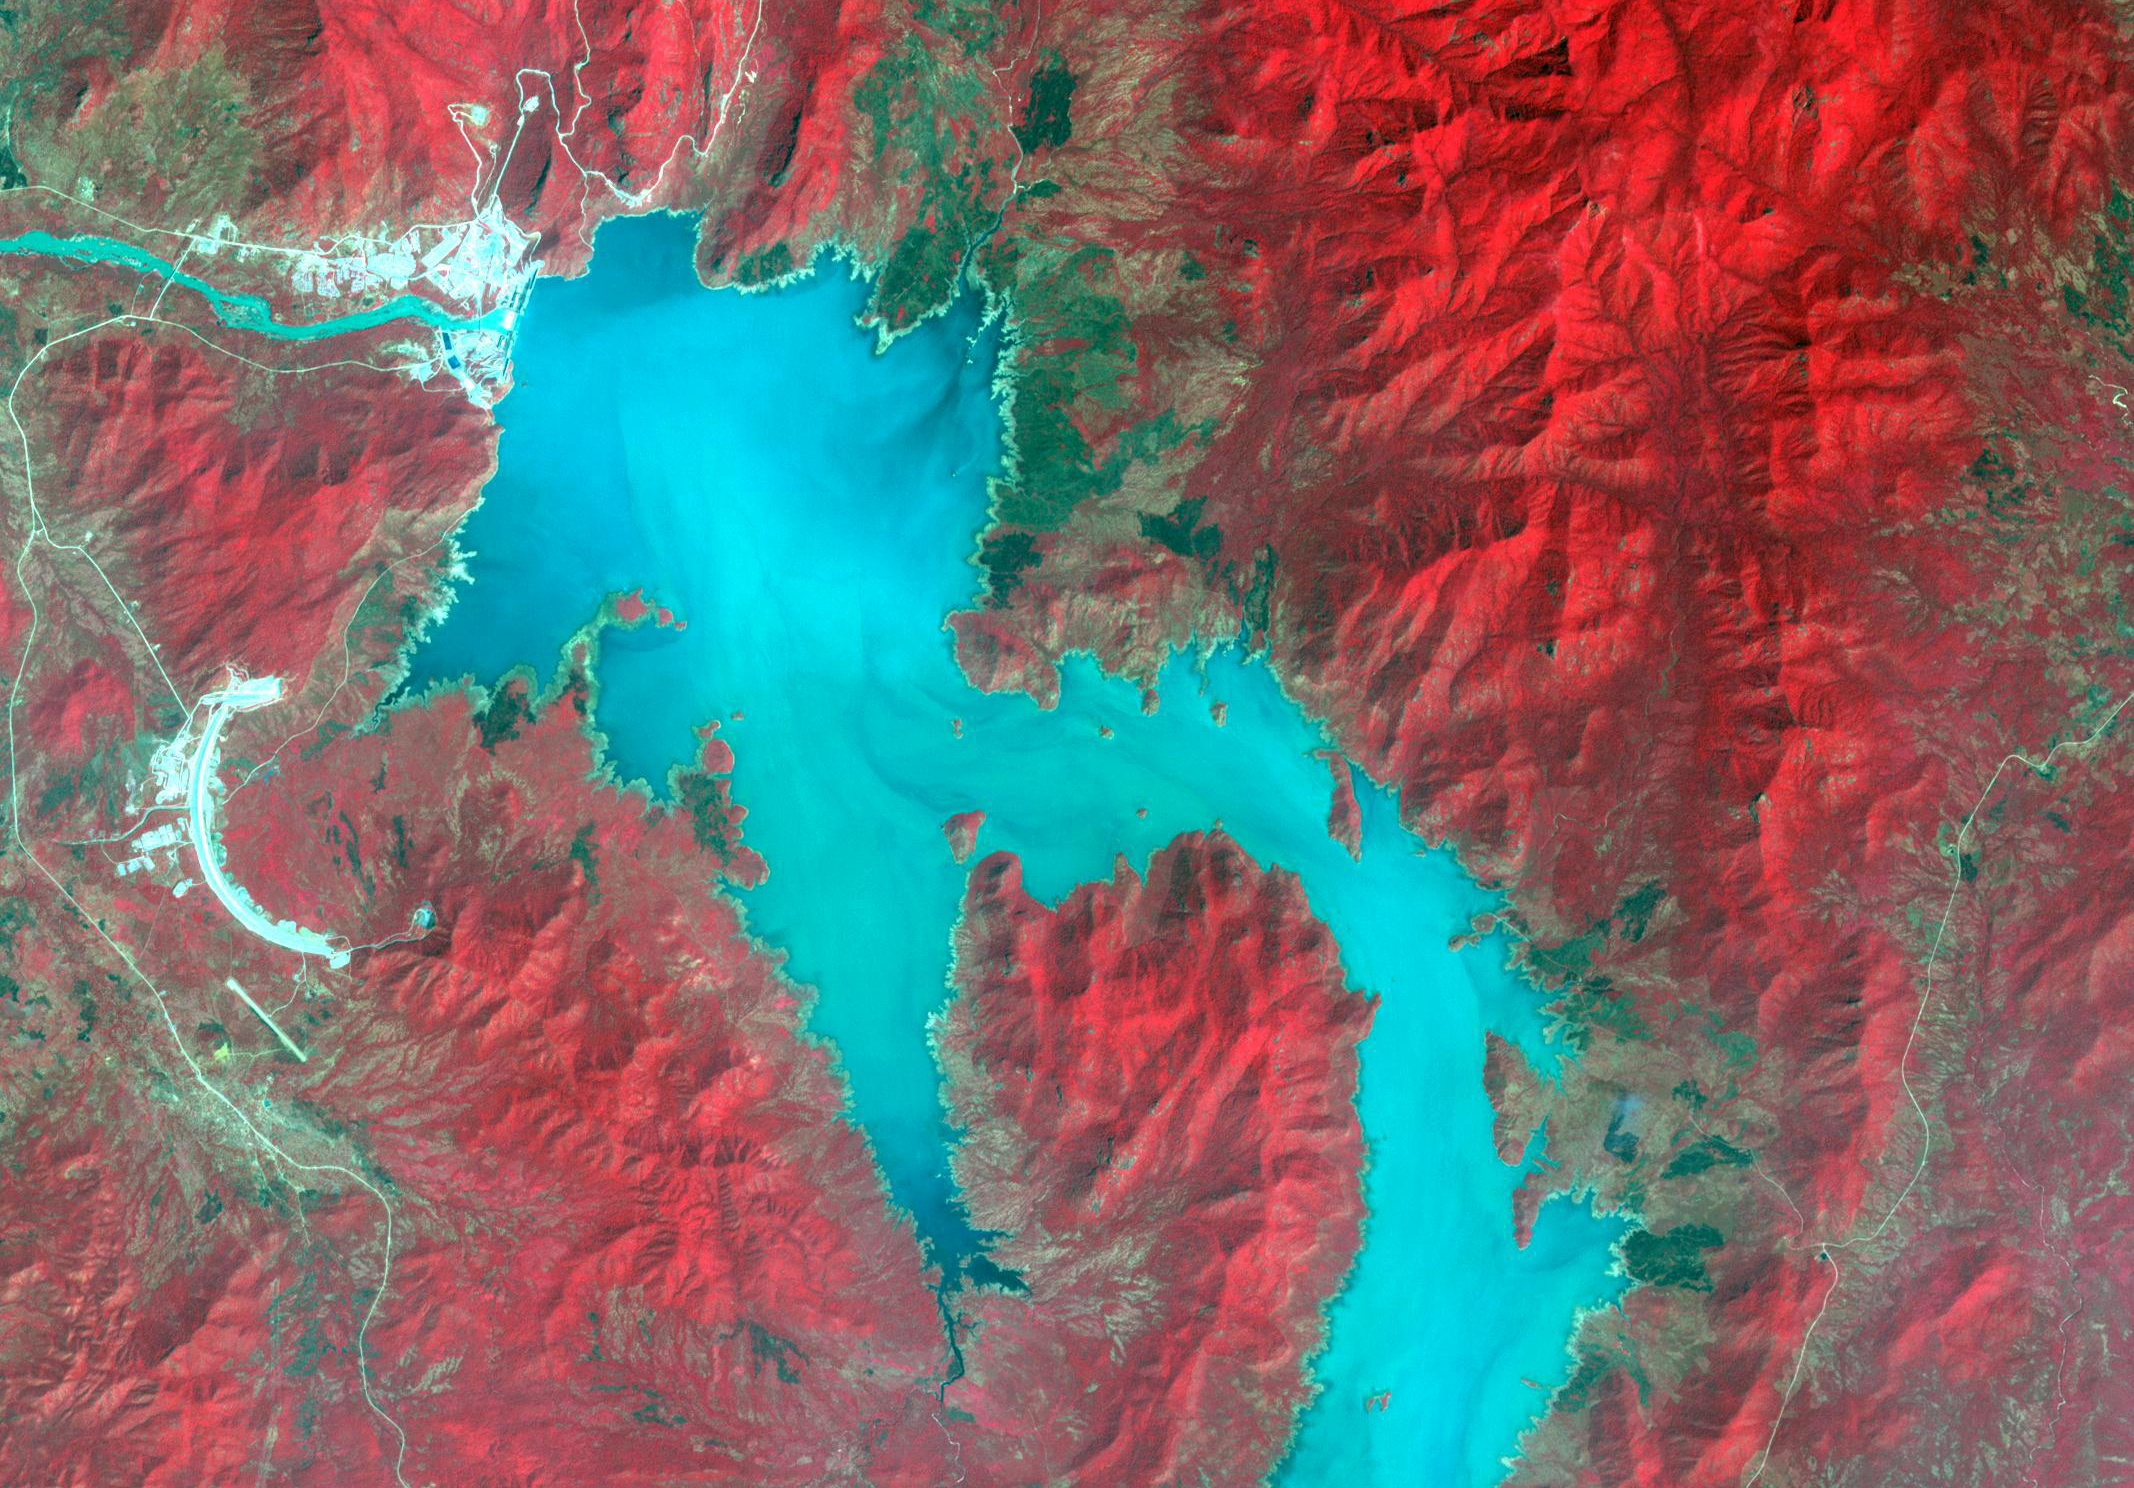 The Blue Nile River is seen as the Grand Ethiopian Renaissance Dam reservoir fills near the Ethiopia-Sudan border, in this broad spectral image taken November 6, 2020. NASA/METI/AIST/Japan Space Systems, and U.S./Japan ASTER Science Team/Handout via REUTERS THIS IMAGE HAS BEEN SUPPLIED BY A THIRD PARTY - RC2M6K9ZT77M